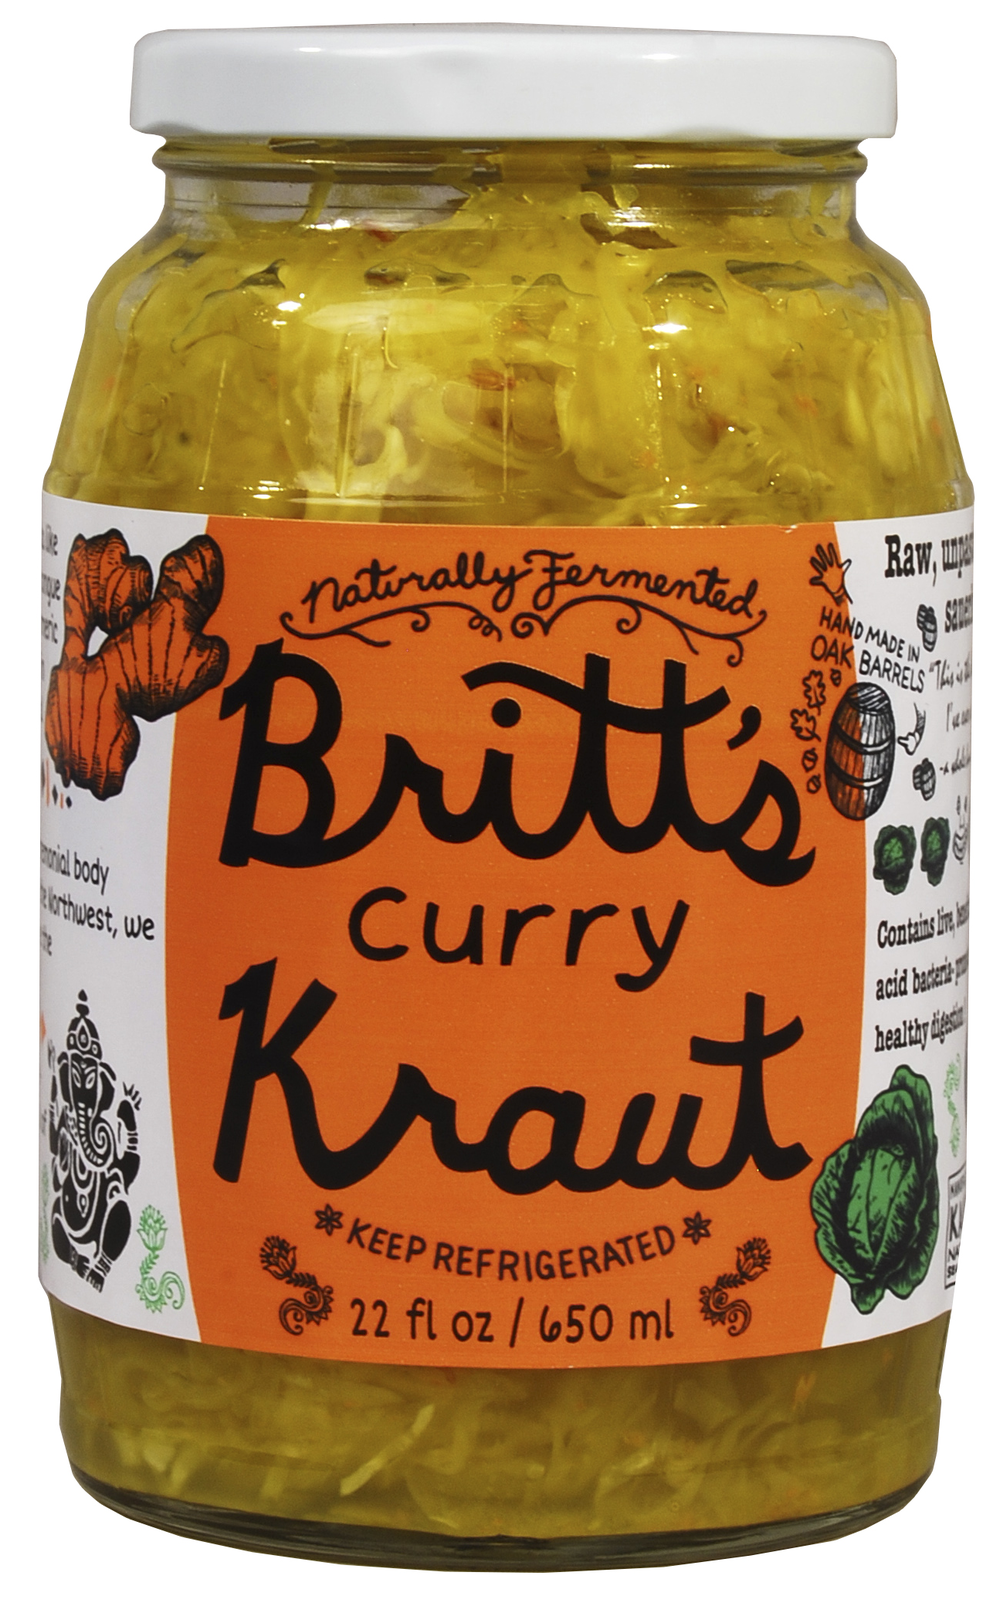 Curry Kraut